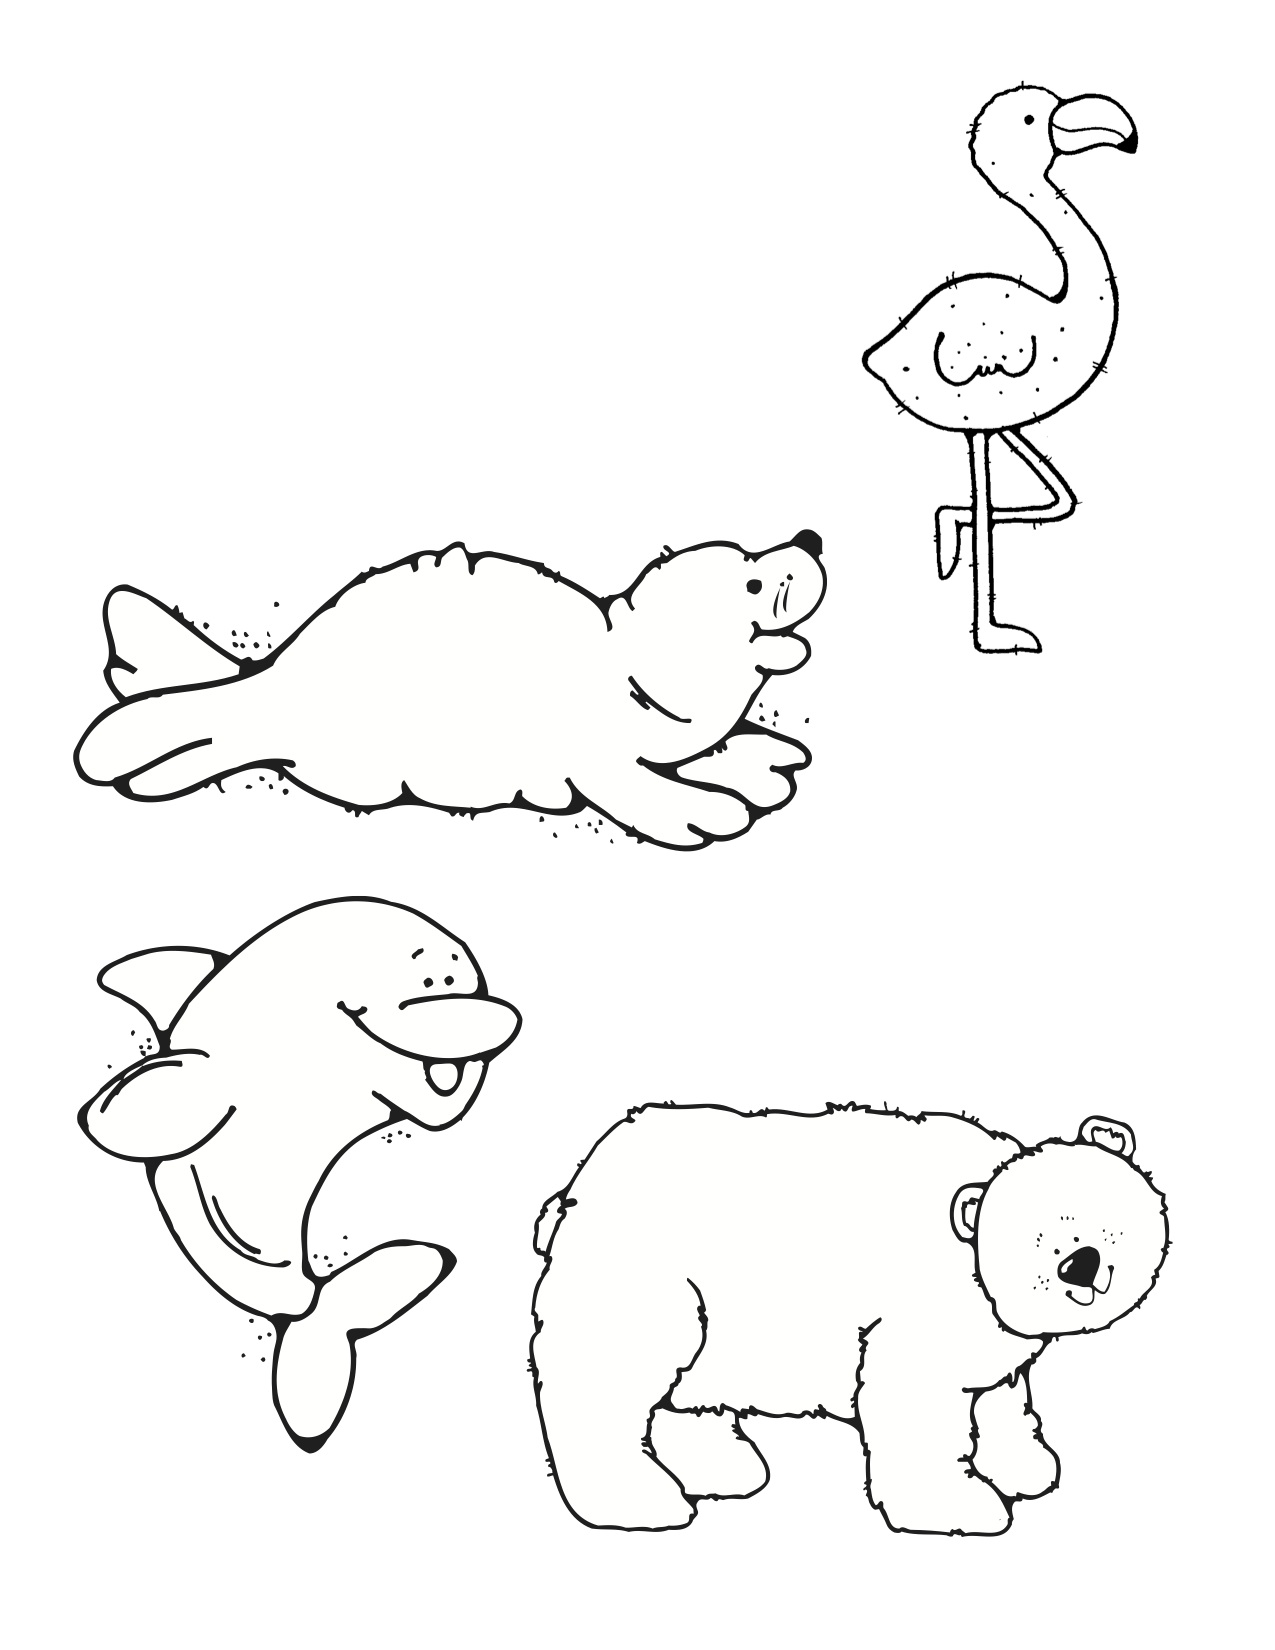 10 Little Rubber Ducks Coloring Page